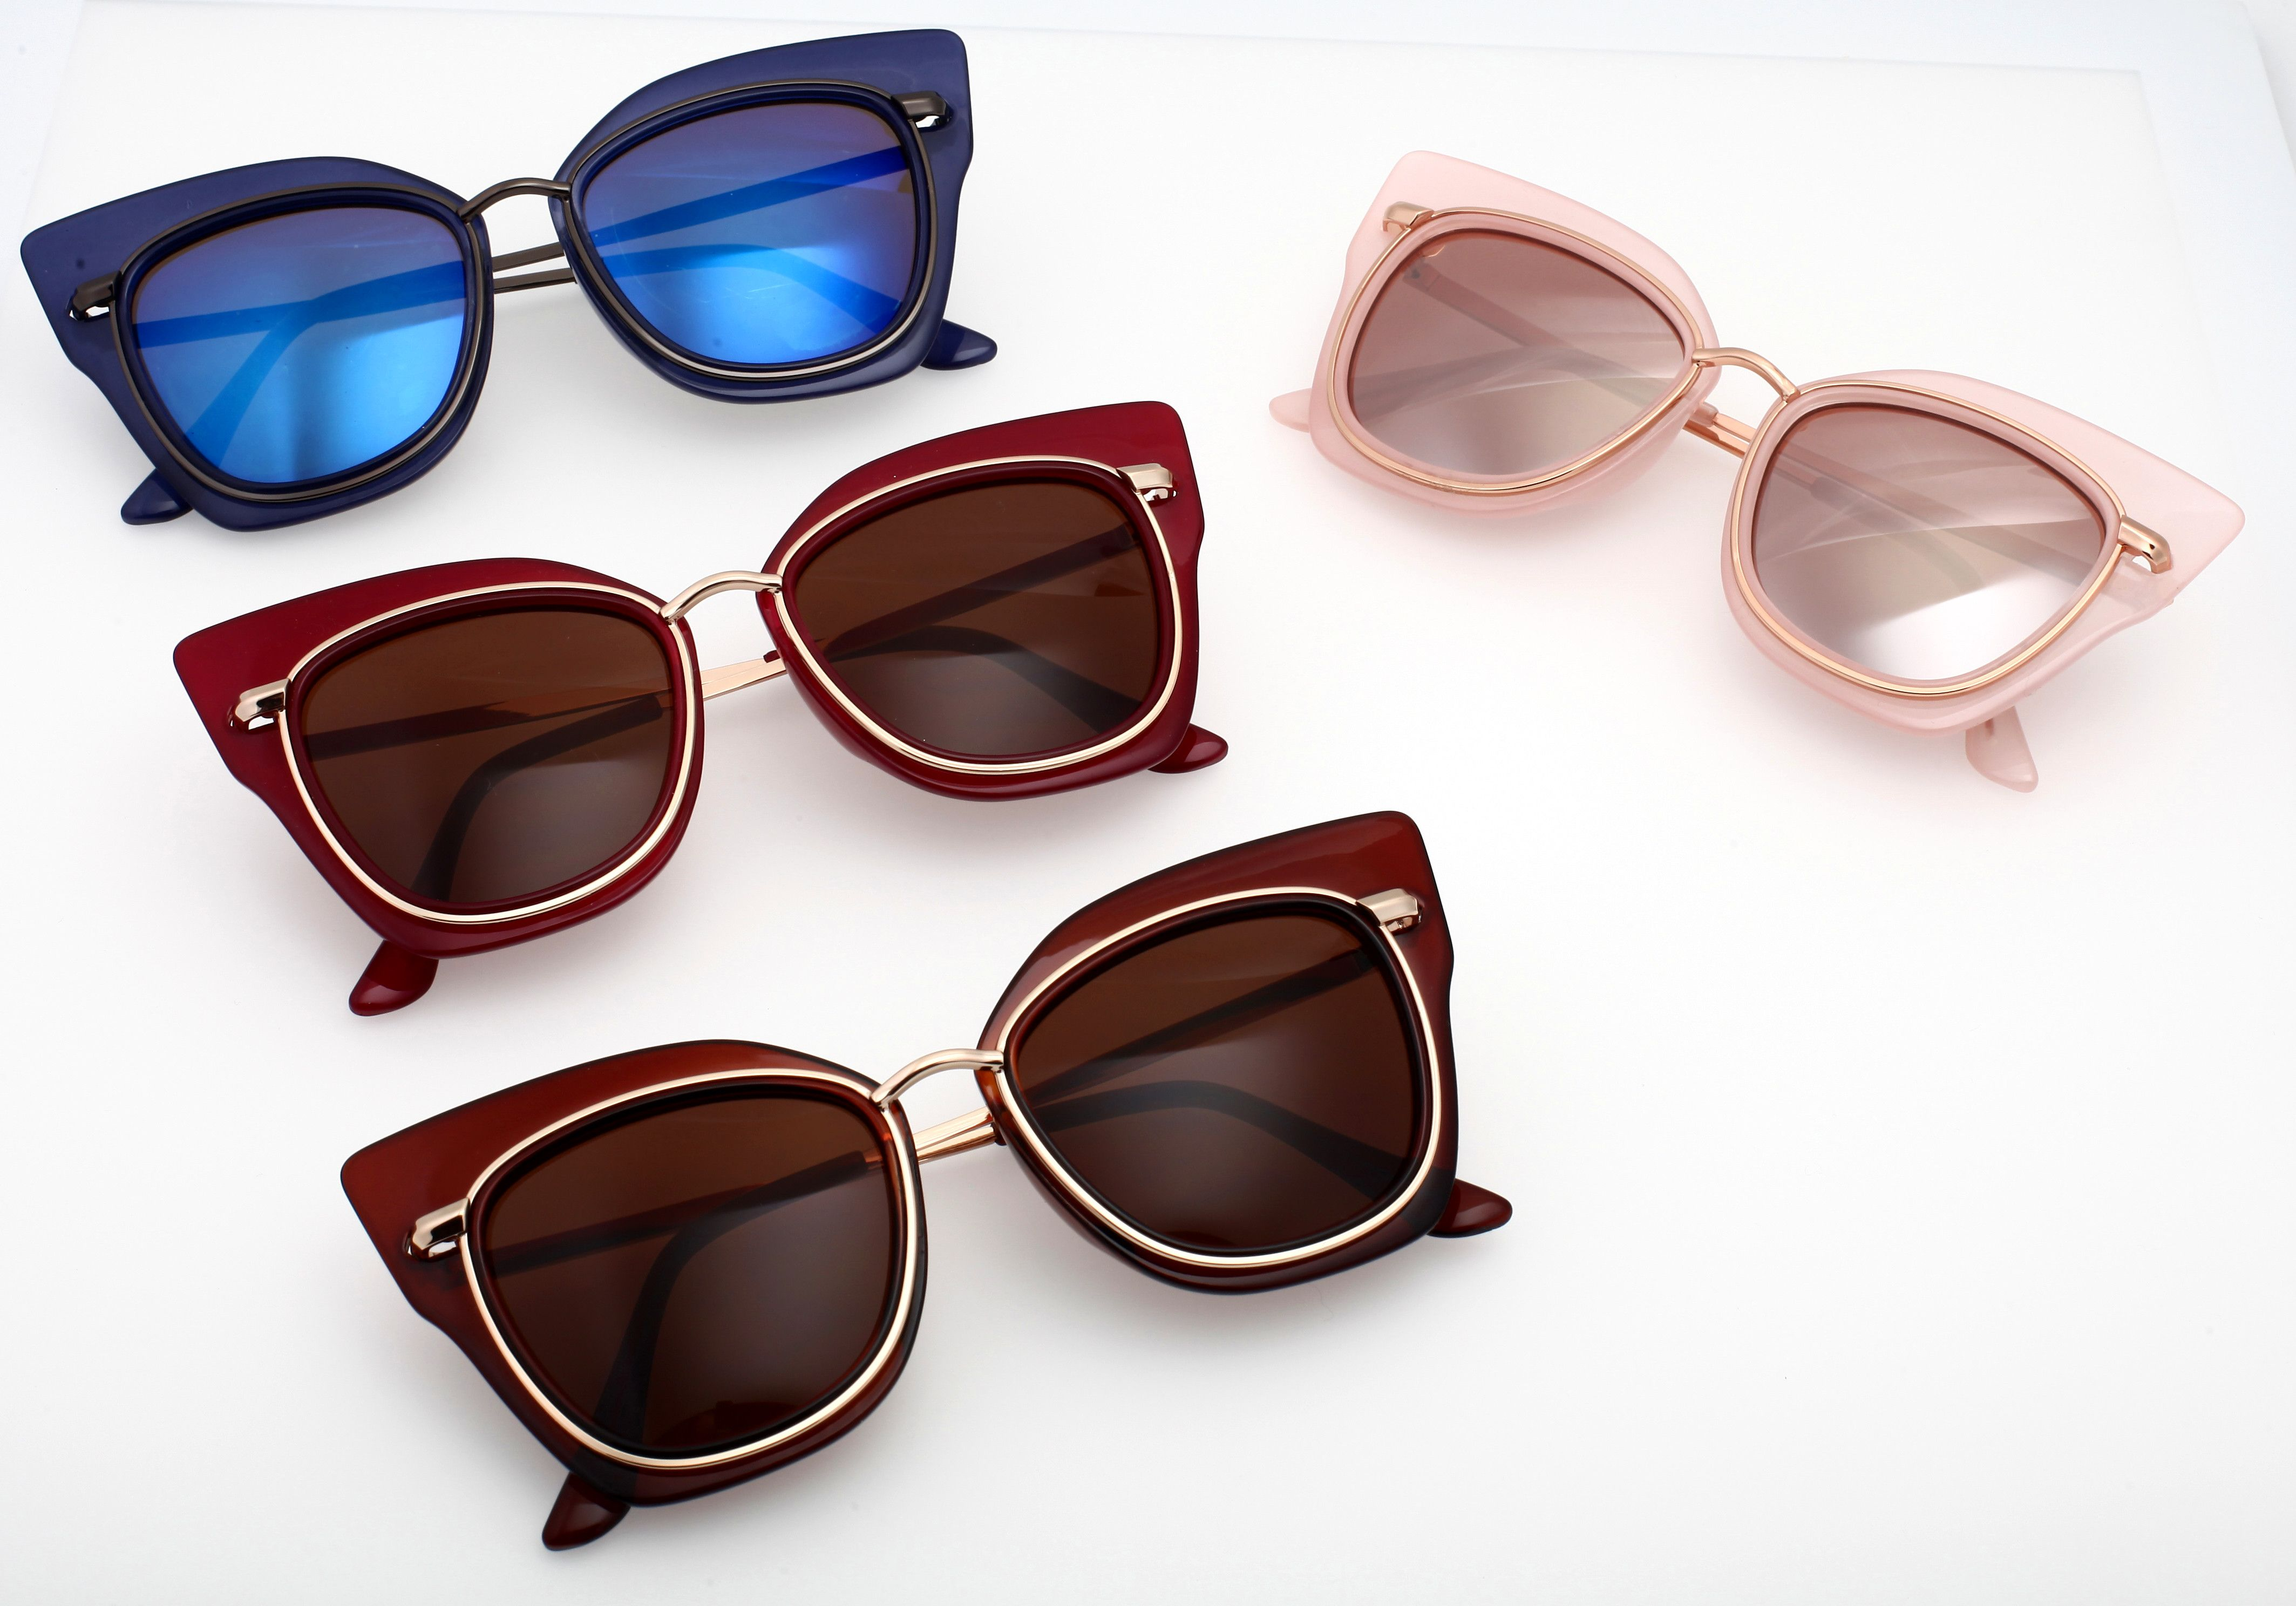 21271e03ef1a VIVIENFANG will provide these new sunglasses in our amazon store on Dec. 20  ,which color do you like ? Pls tell me your idea!!!